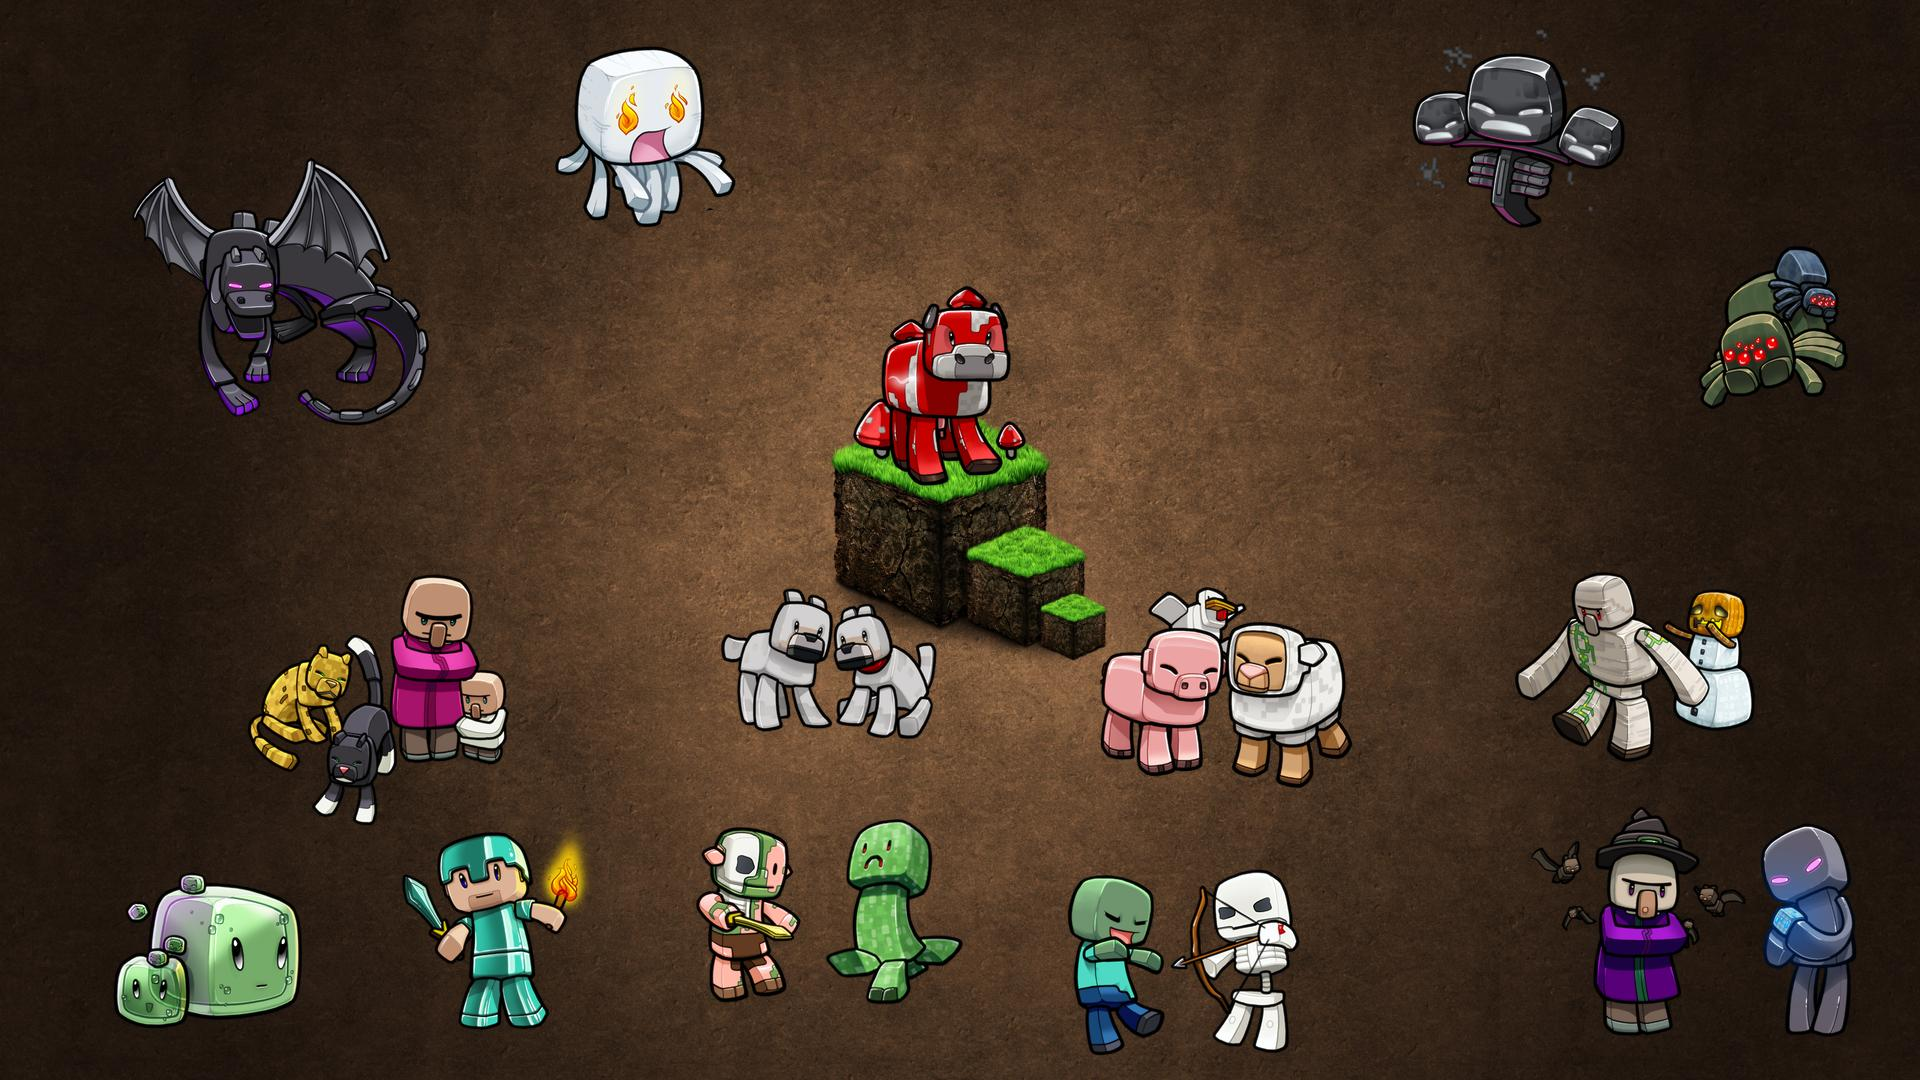 minecraft wallpaper,games,action figure,fictional character,adventure game,toy